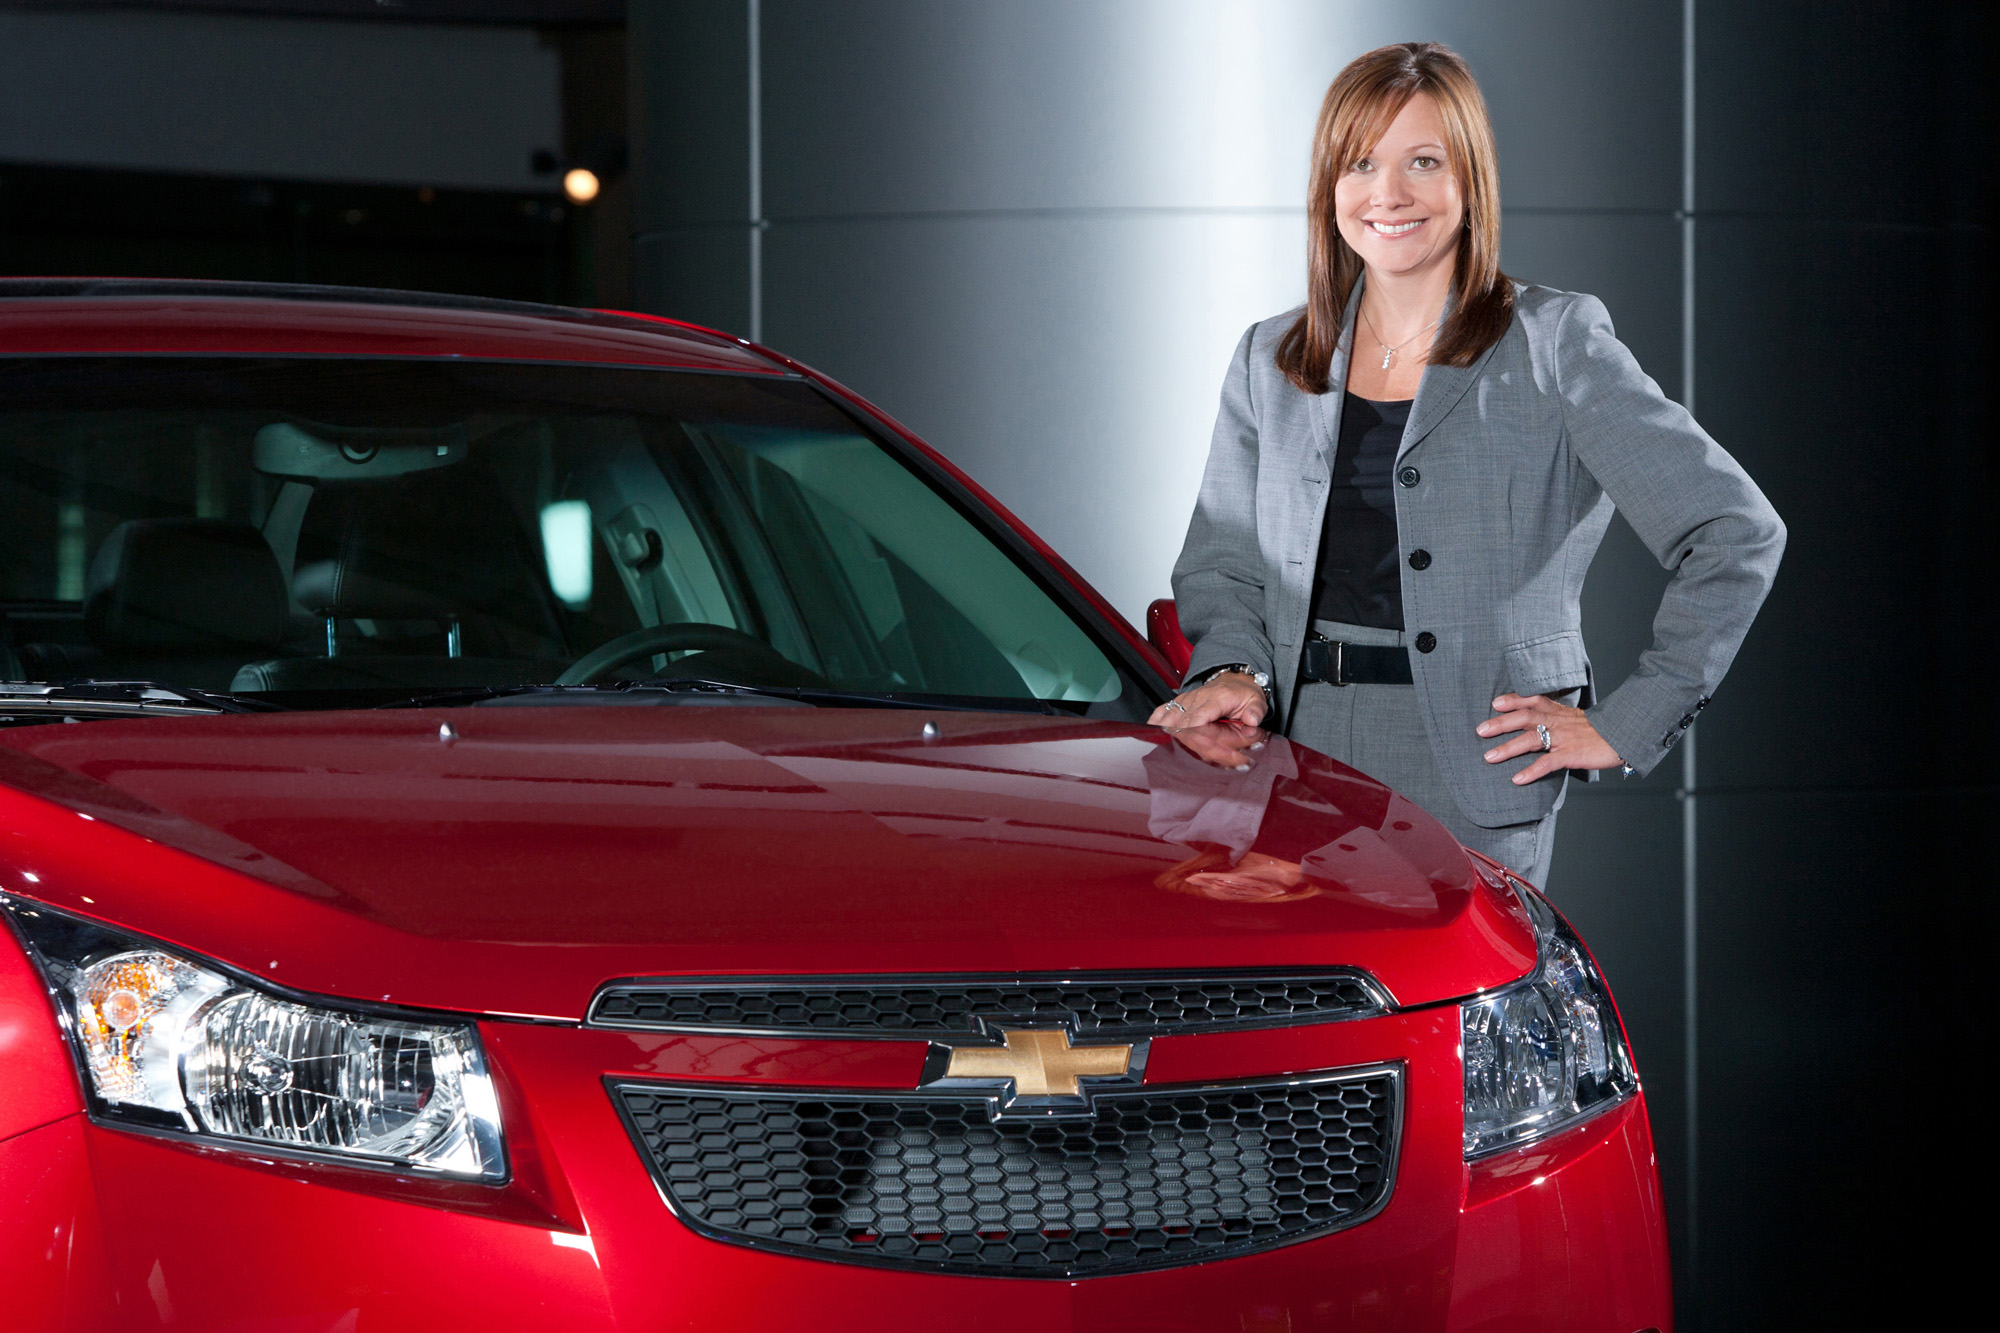 Dec. 10, 2013 - Detroit, Michigan, U.S. - General Motors named 33-year company veteran Mary Barra as CEO. Barra will become the first female CEO of a U.S. car company. PICTURED: Sept. 2, 2010 - General Motors Senior Vice President Global Product Development MARY BARRA with a 2011 Chevrolet Cruze at GM World Headquarters. (Credit Image: © John F. Martin/General Motors/ZUMAPRESS.com)